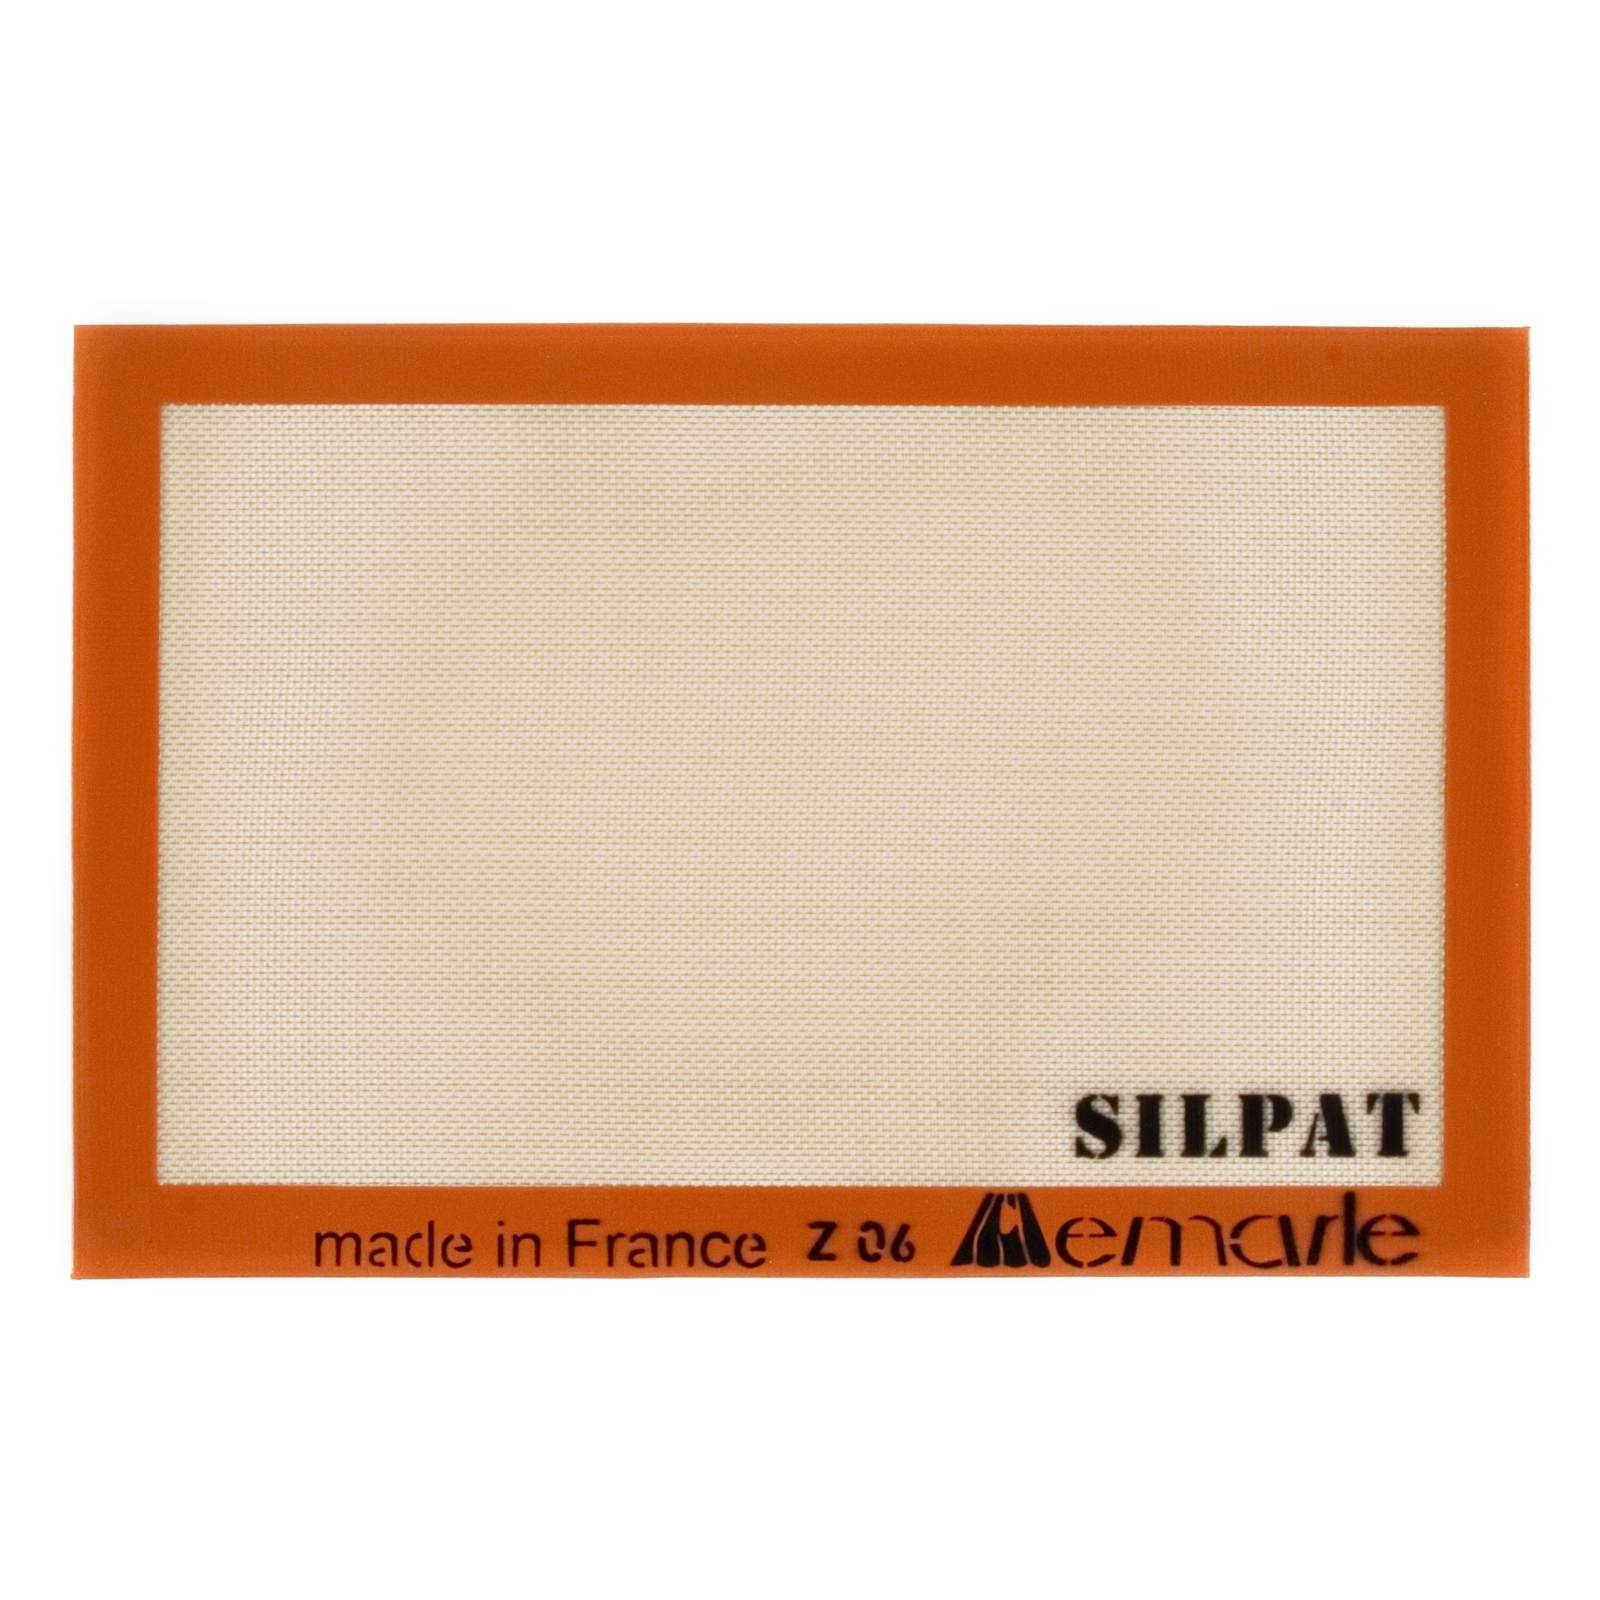 Silpat Toaster Oven 7.8 x 10.8 Inch Baking Mat